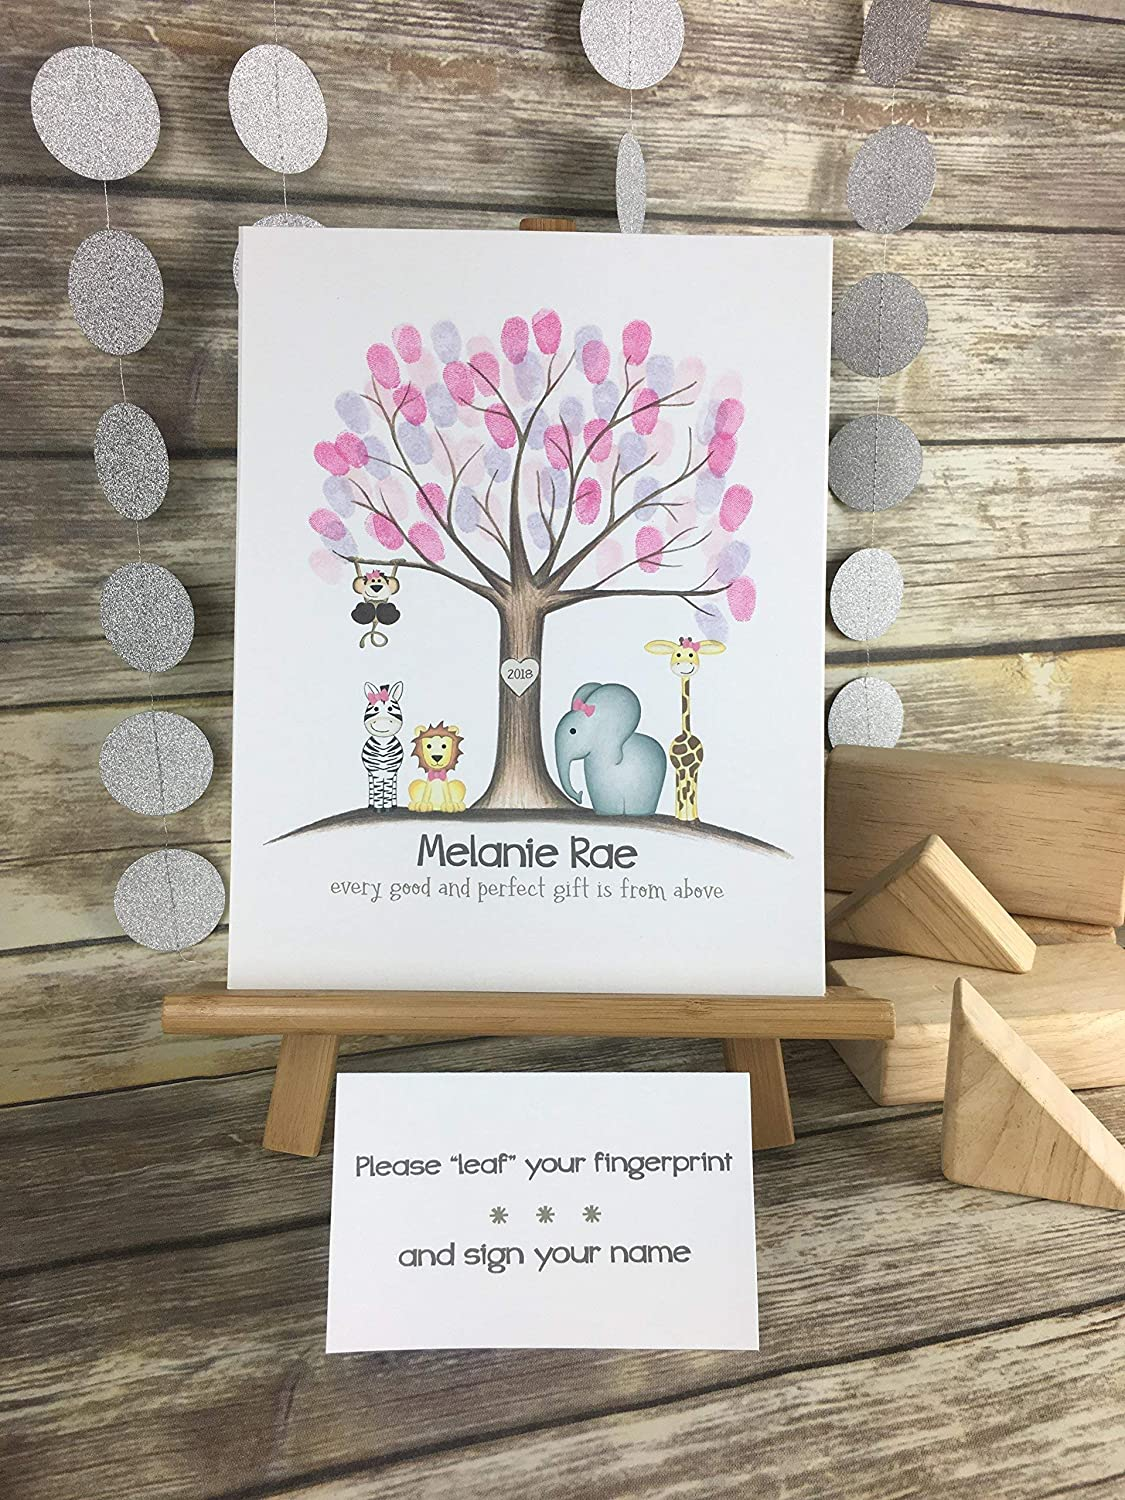 Customizable fingerprint tree for a girl's jungle safari animal themed baby shower featuring jungle animals with bows in the color of your choice.